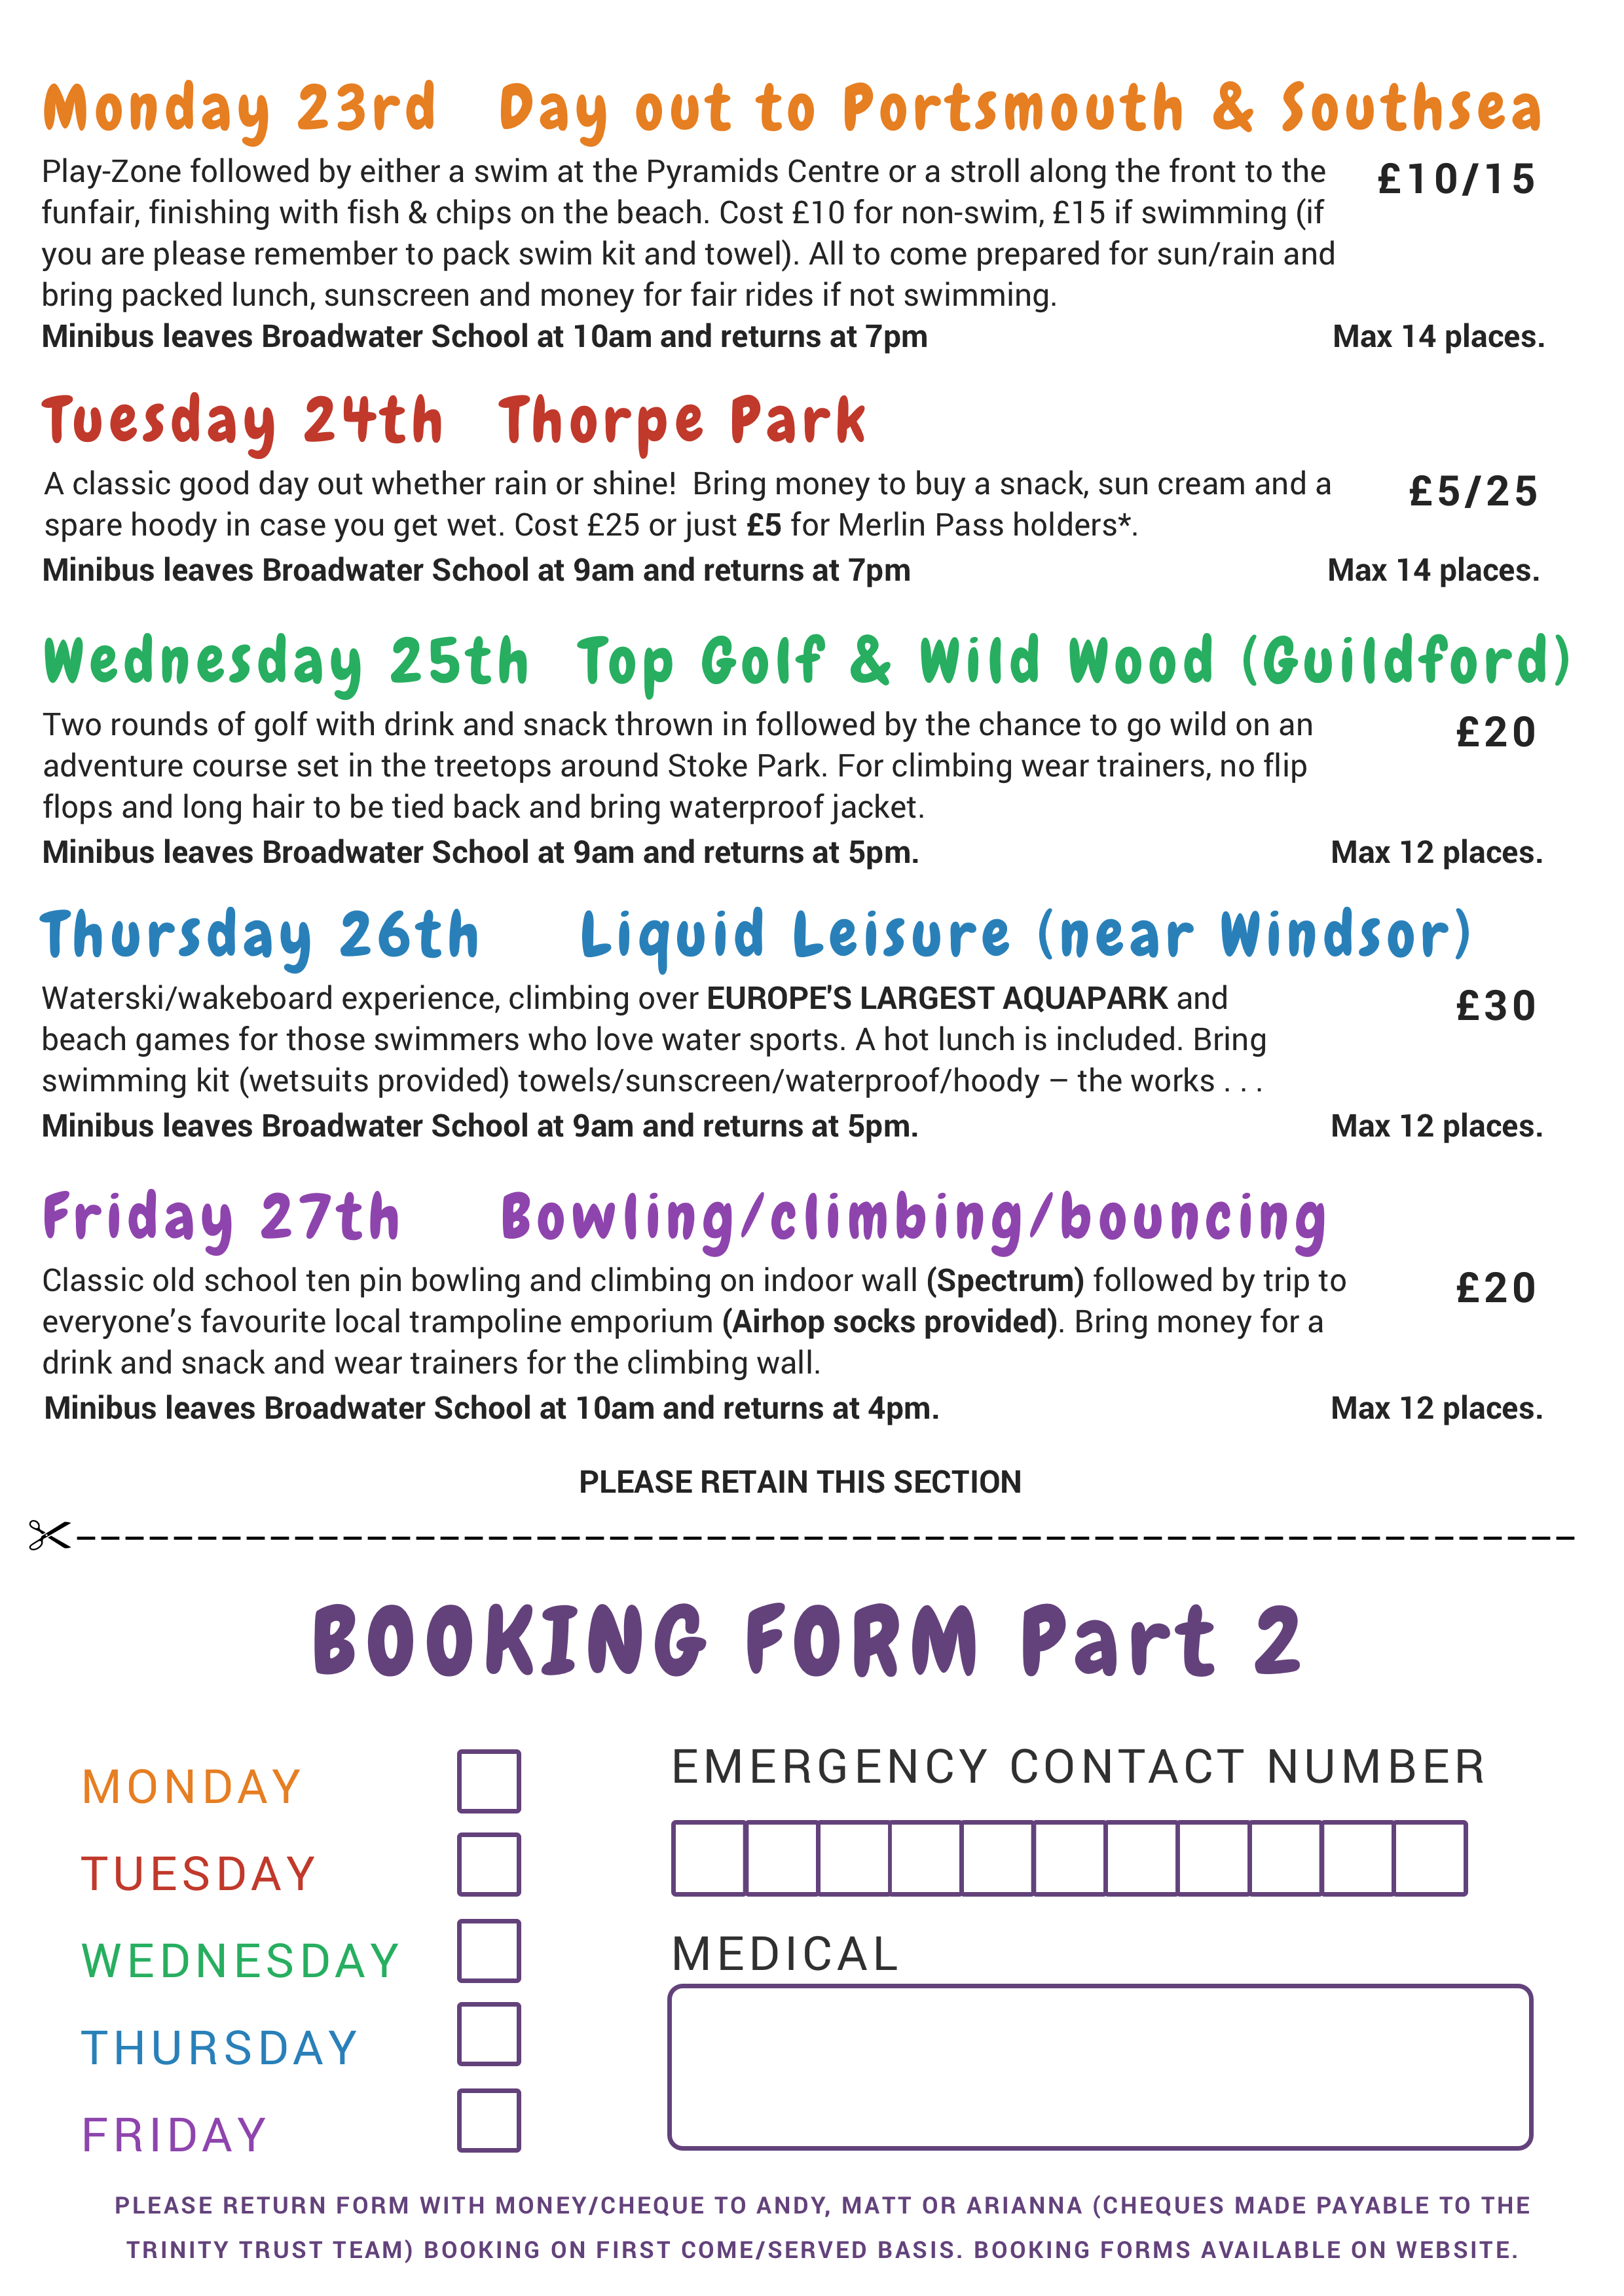 Booking Form Back 1 IMG.png